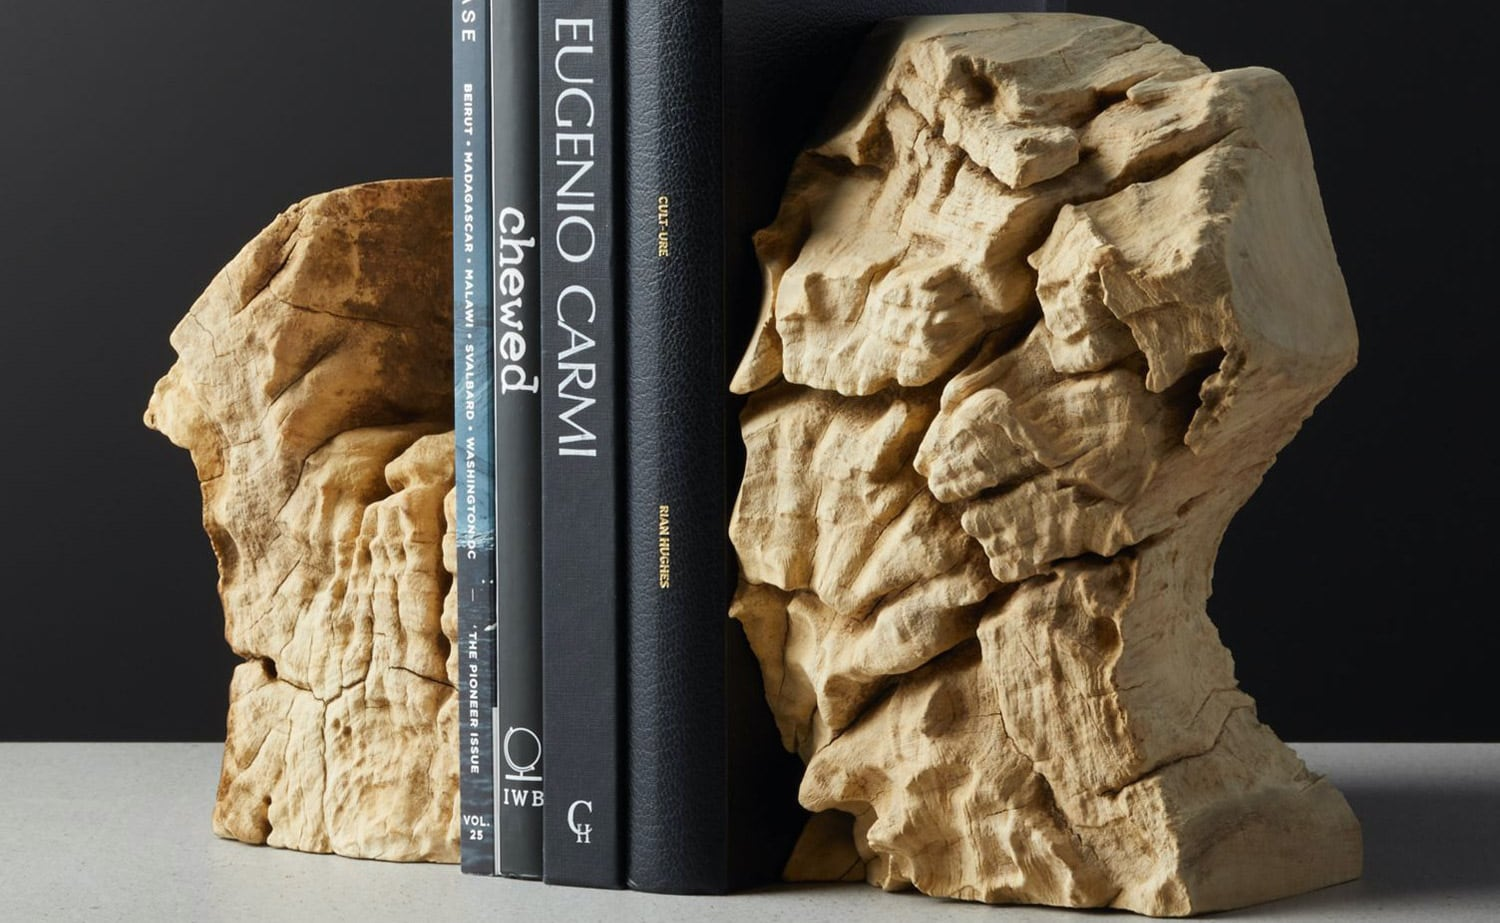 Reclaimed Teak Bookends by CB2 each have unique root characteristics